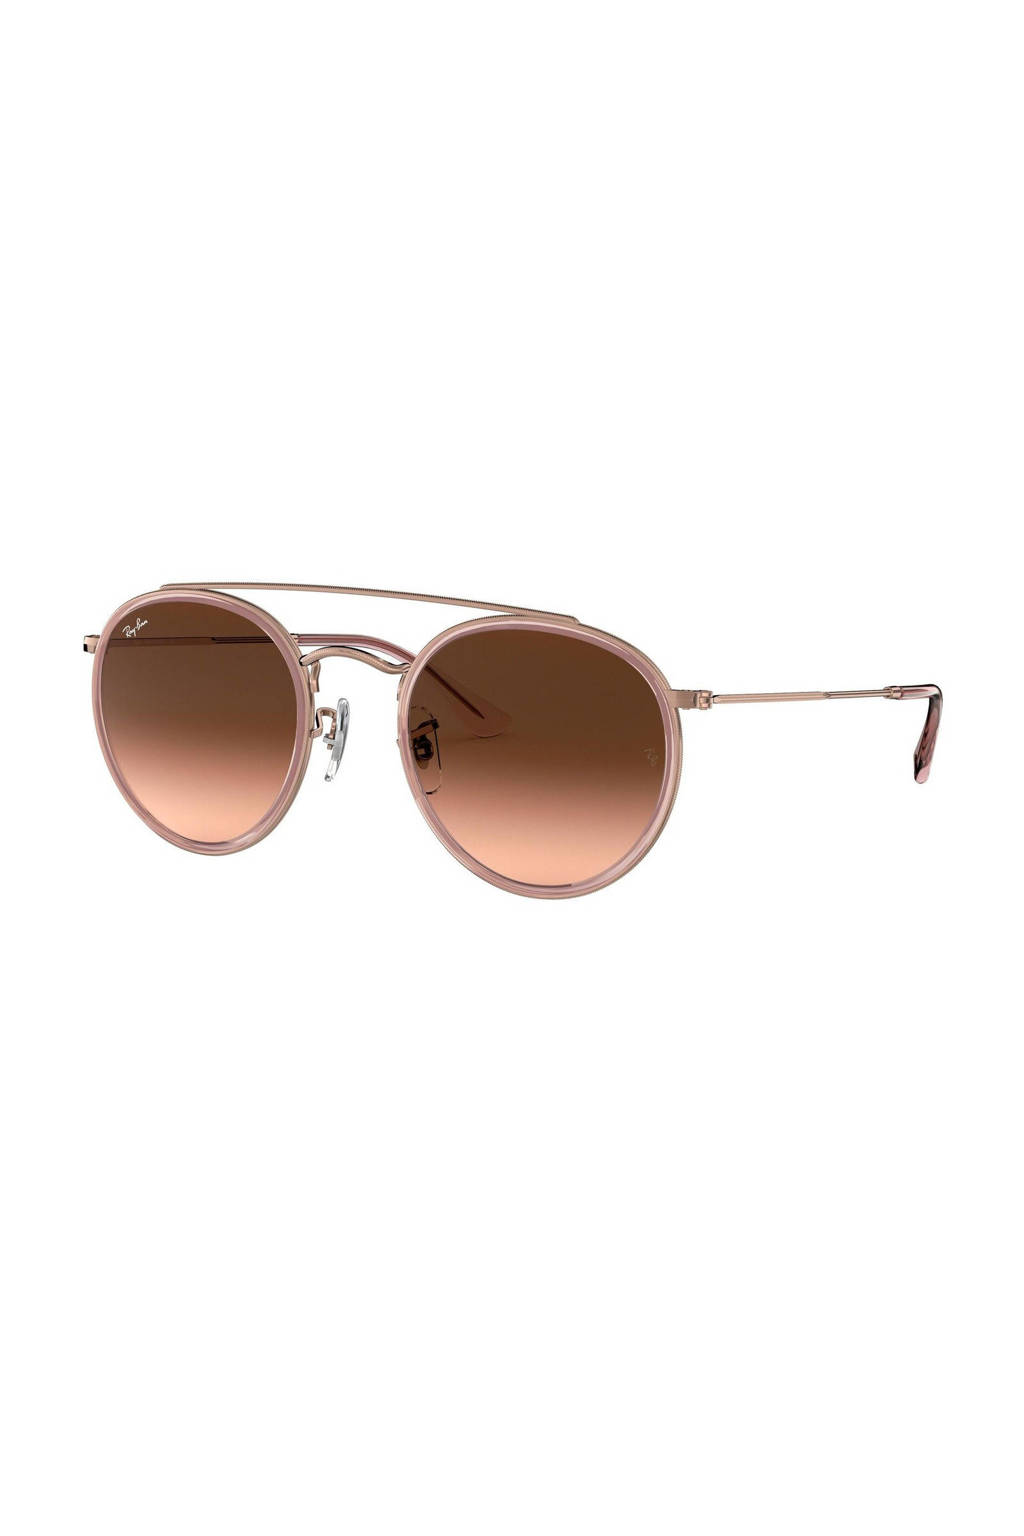 Ray-Ban zonnebril 0RB3647N, Roze/bruin